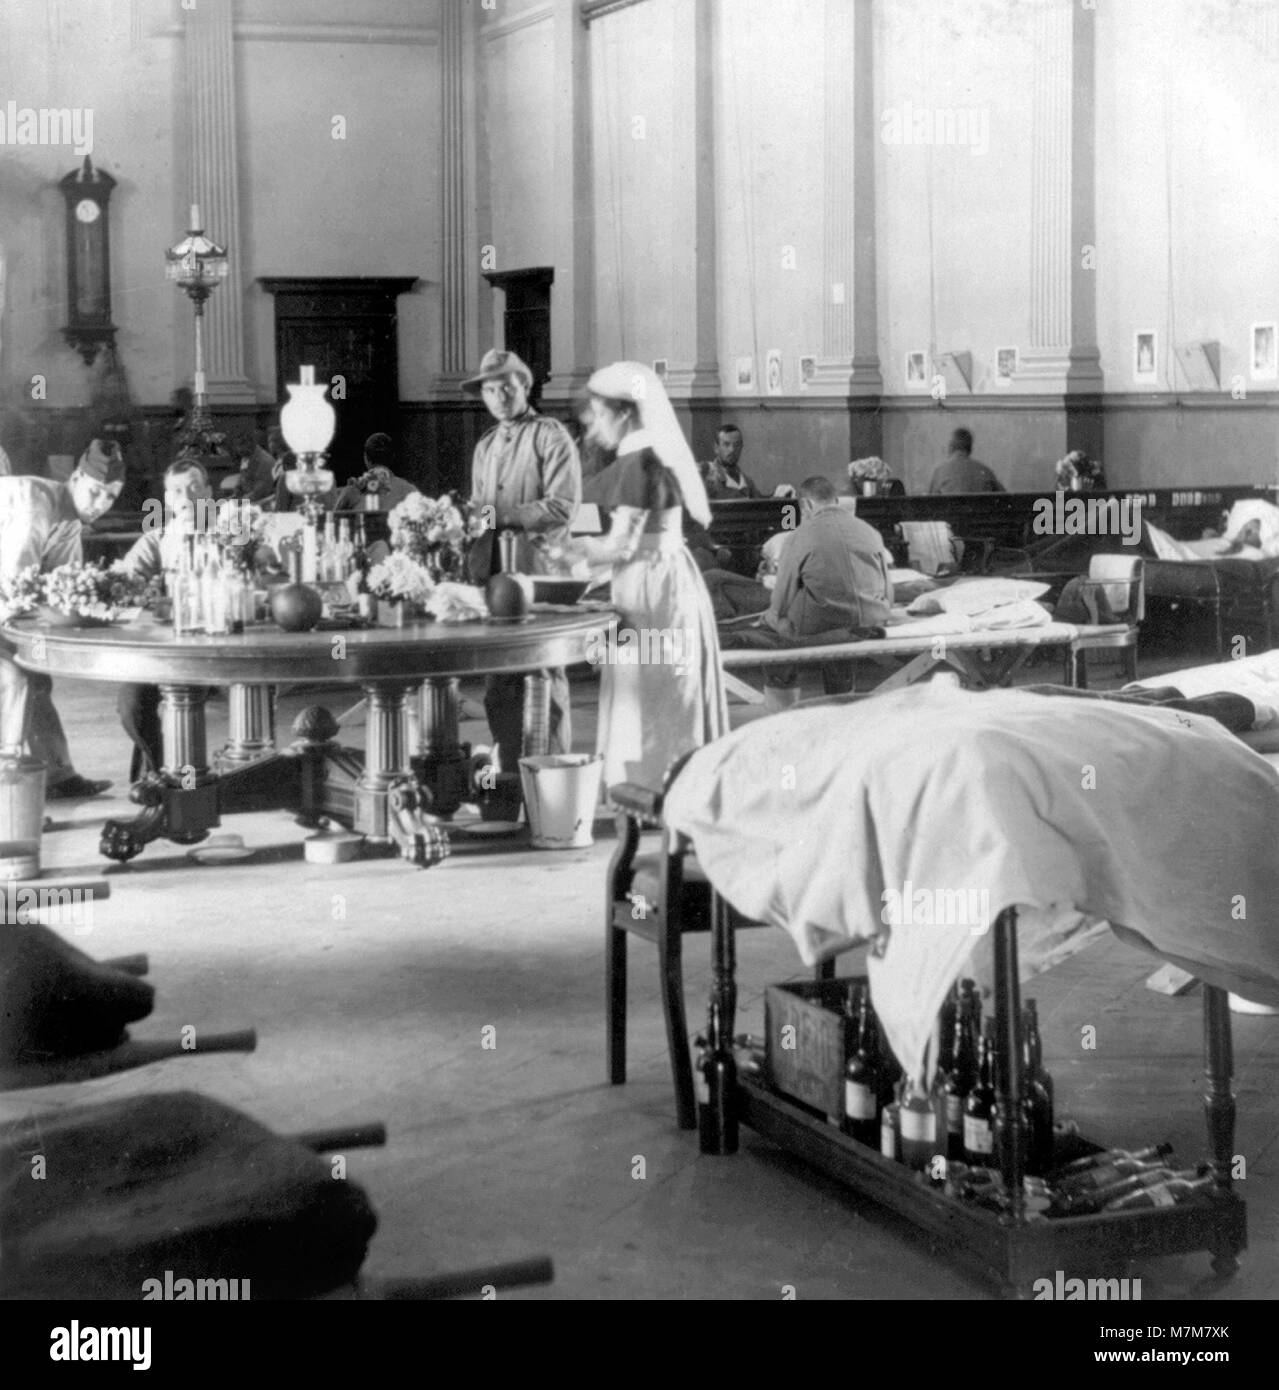 Boer War. British troops being treated at the hopital, Raadzaal, Bloemfontein, South Africa, during the Second Boer - Stock Image